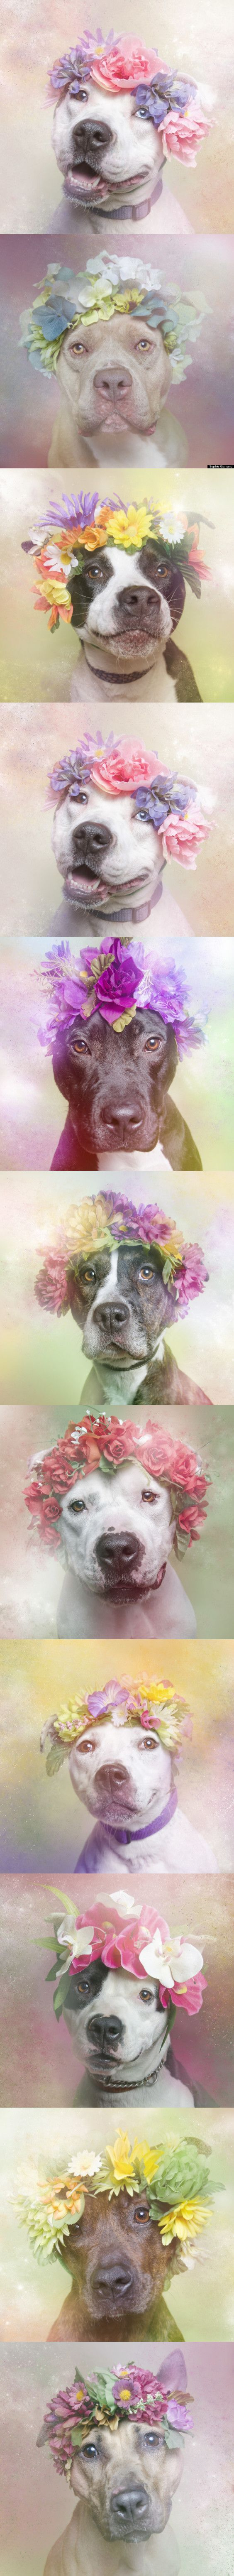 Cali is available for adoption through Sean Casey Animal Rescue. (Photo: Sophie Gamand (please follow photo link